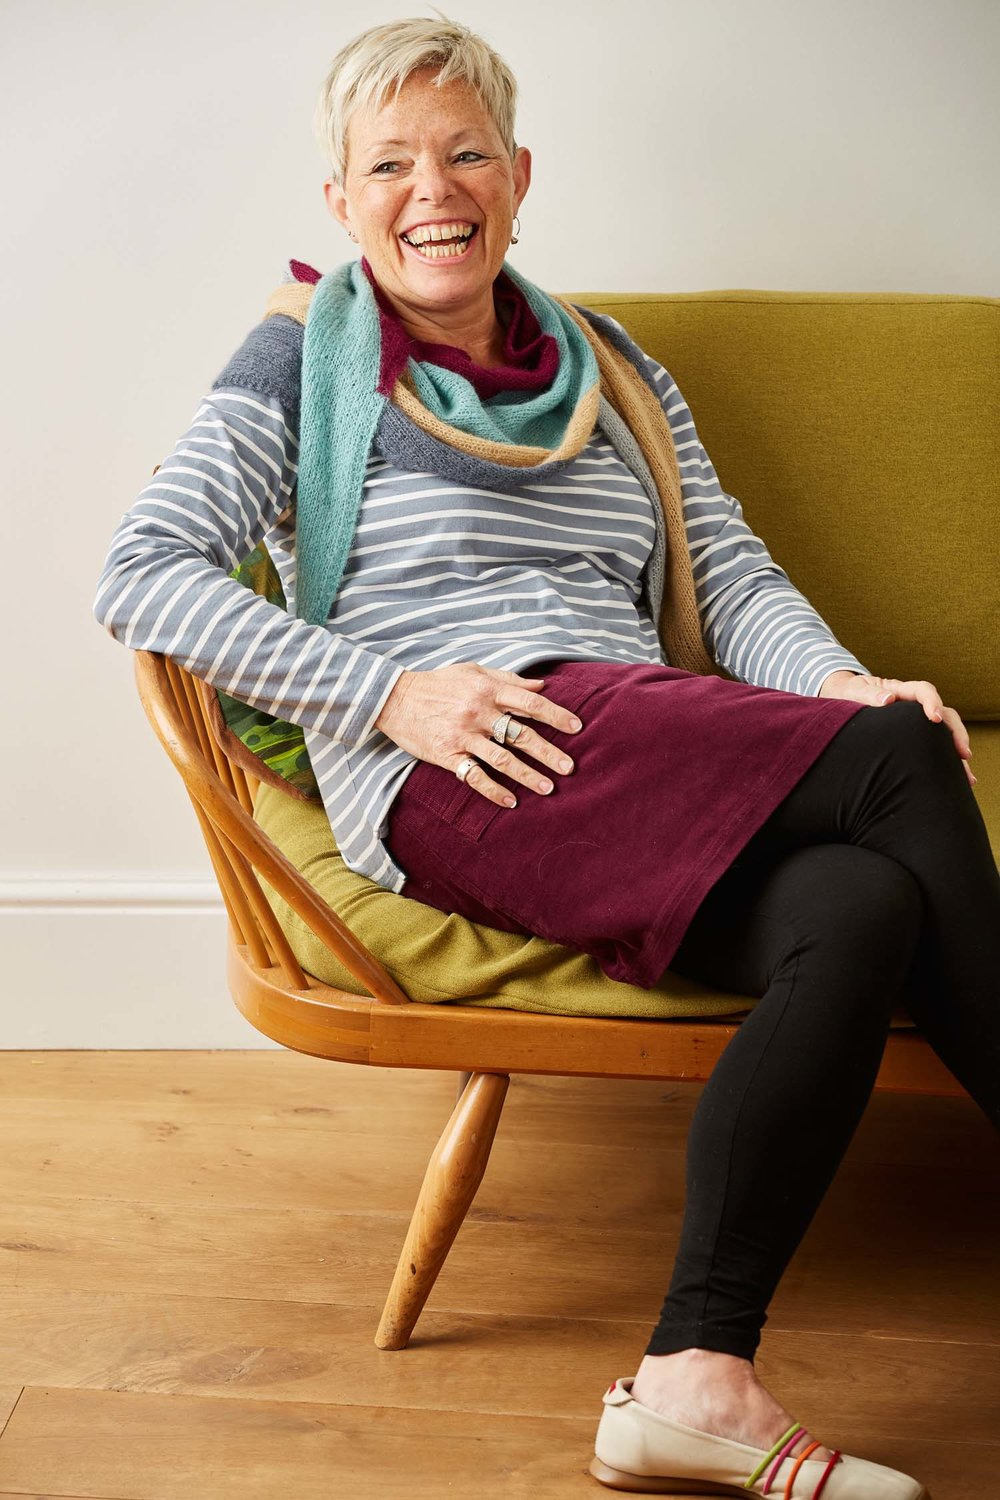 Who knew that intarsia could be such fun? Bristol's designs are fantastically clever, while also being easy to knit.